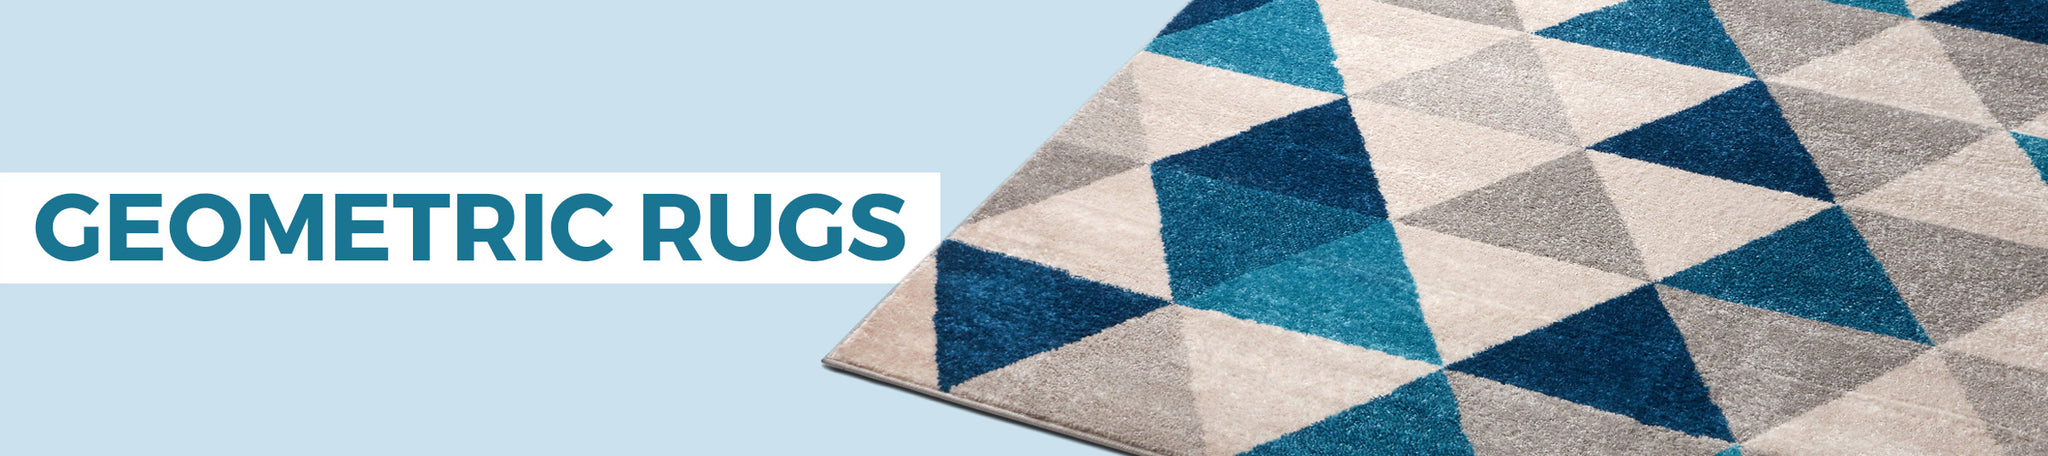 Geometric Rugs Collection from Well Woven